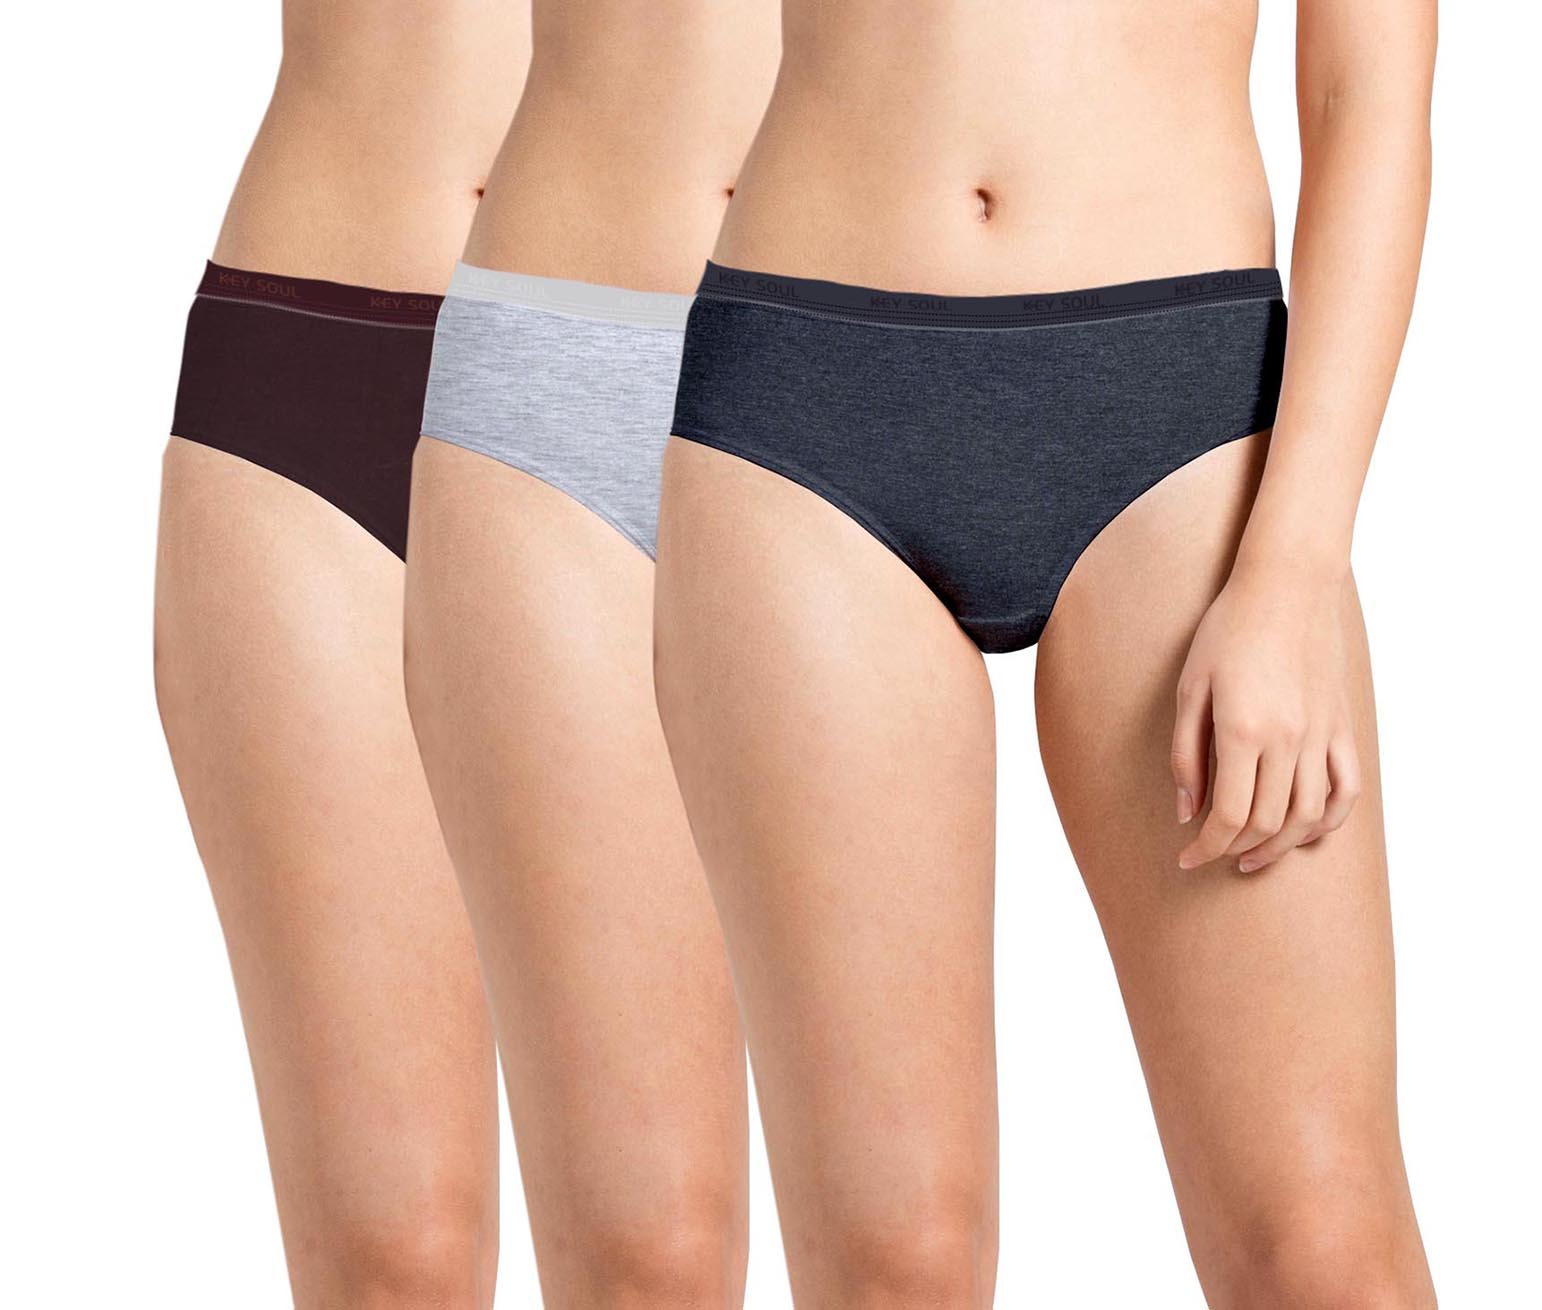 Wmn Panty KS001-P-O3-SOLID PACK 11 3XL SIZE ONLY